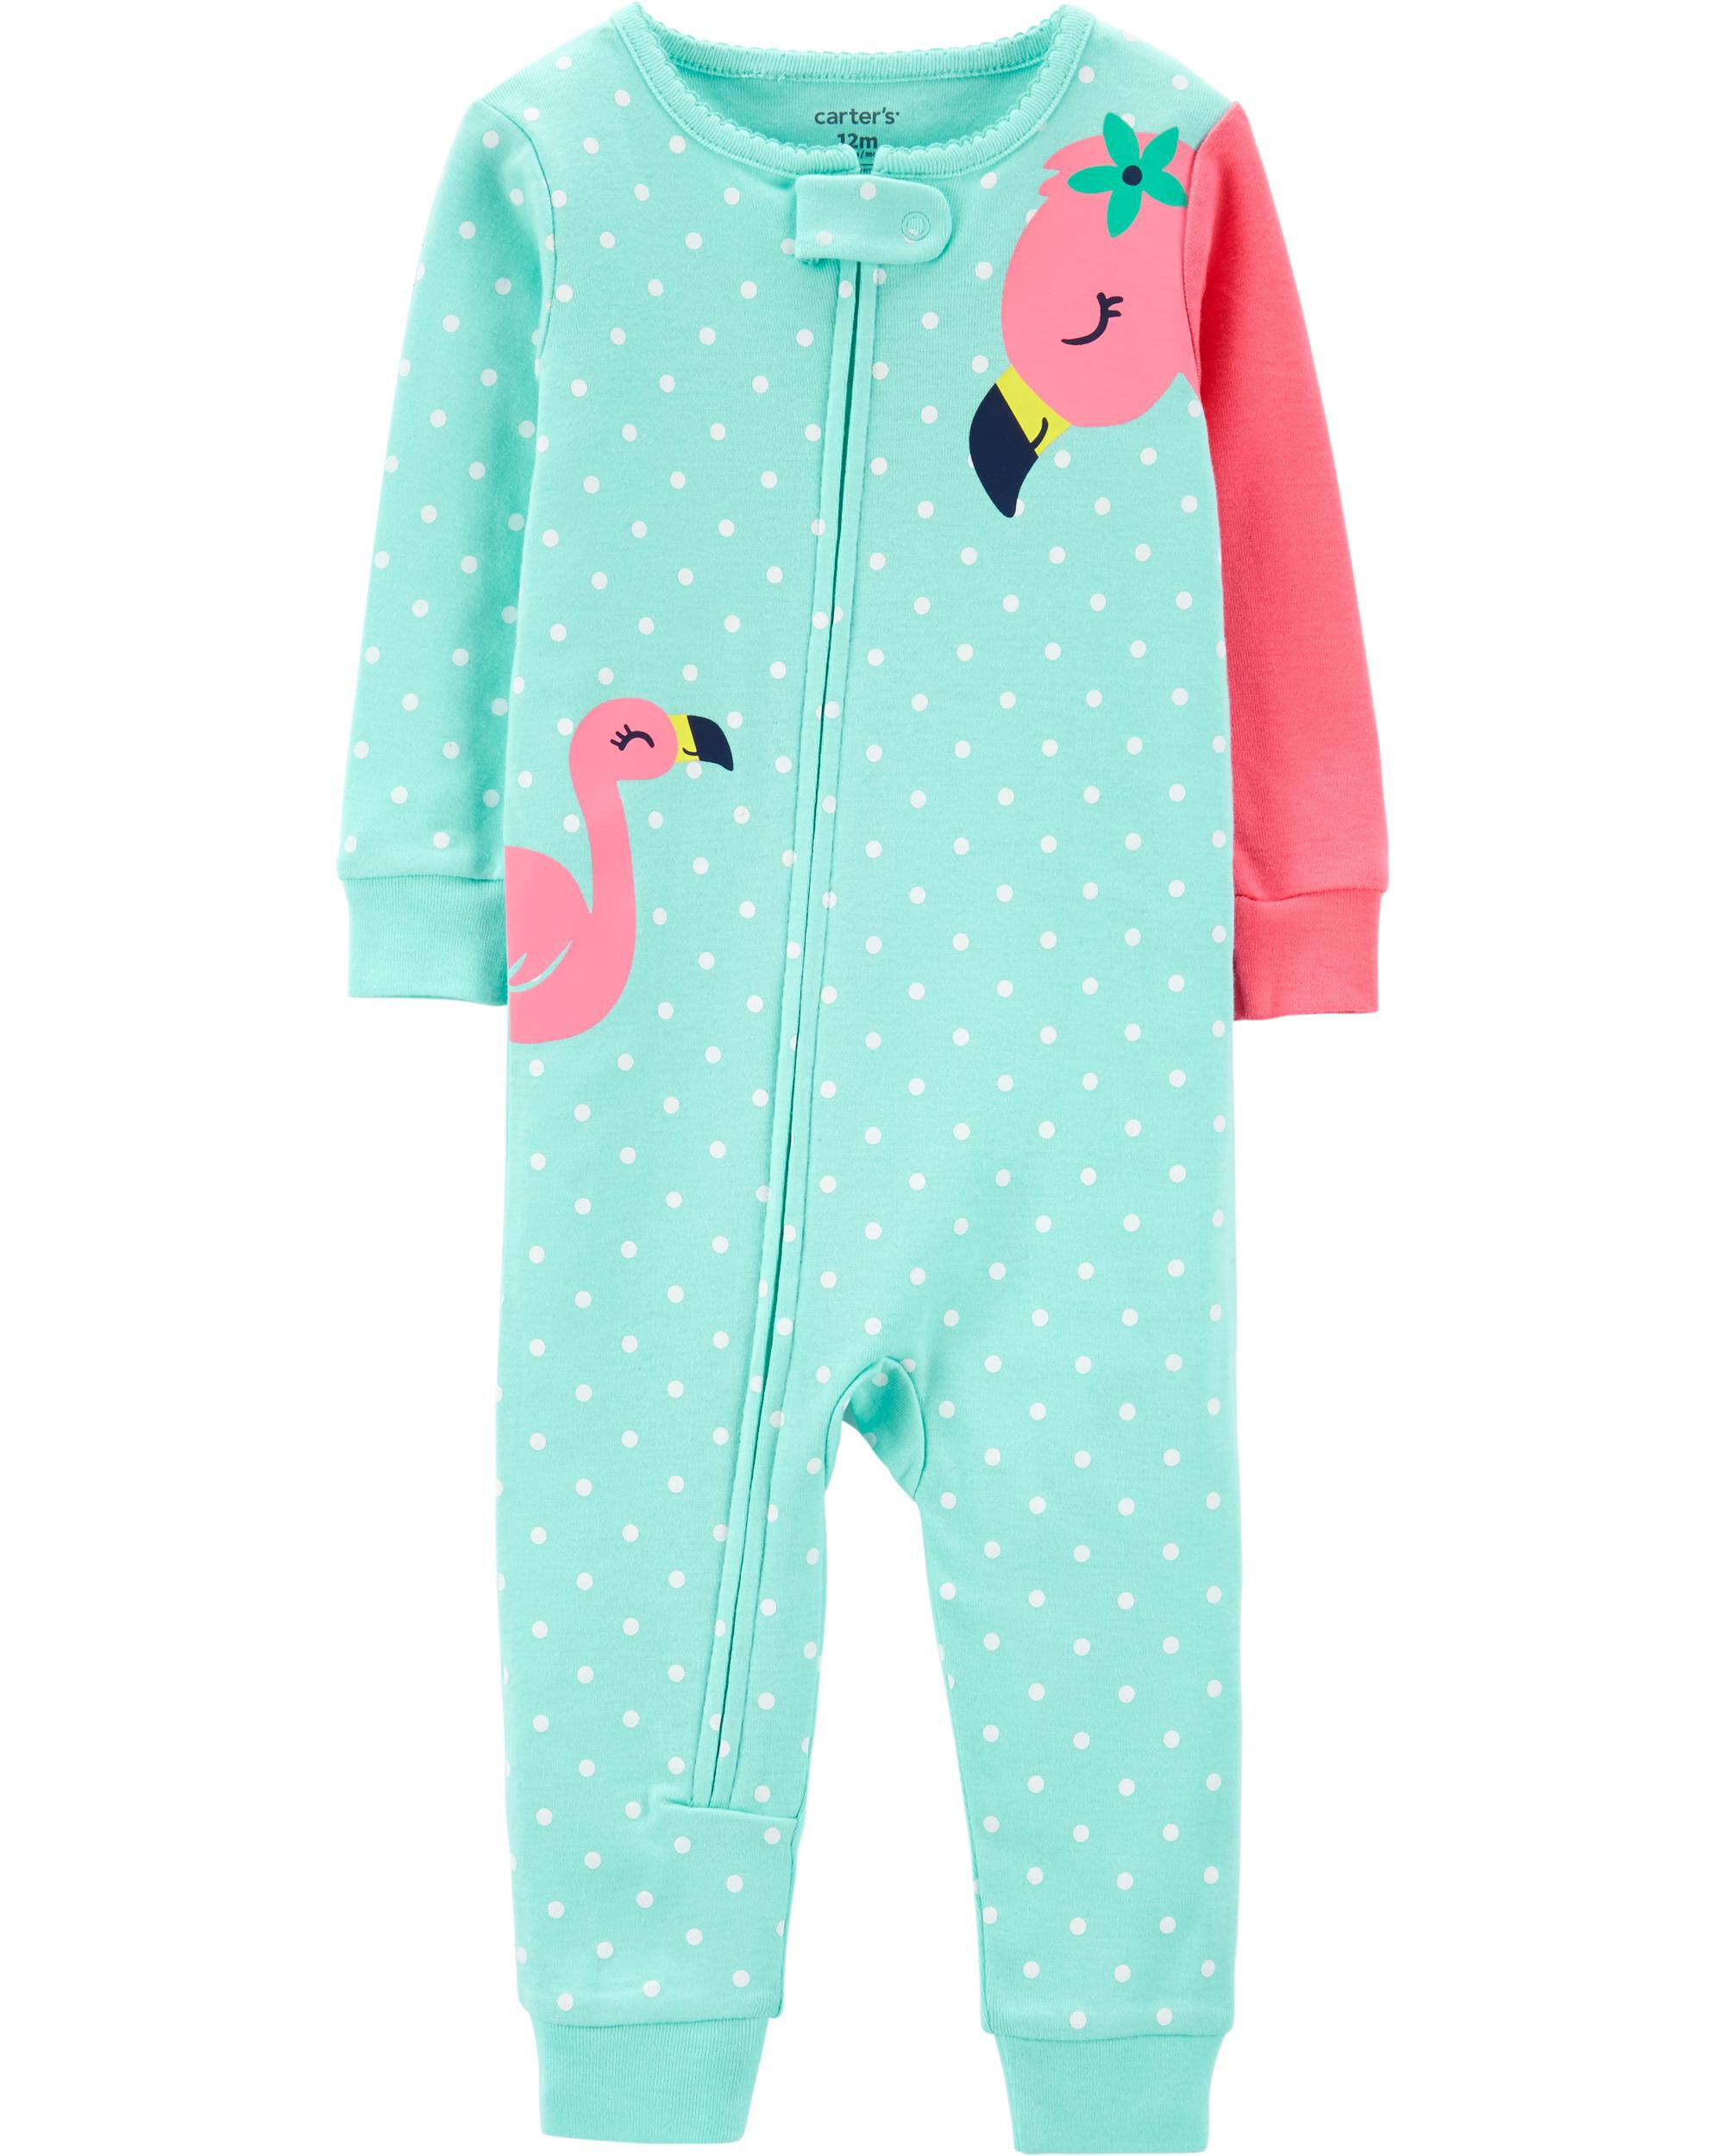 Carters Just One You Toddler Girl Panda Pajamas Sz 12 M Baby Clothing, Shoes & Accessories Sleepwear